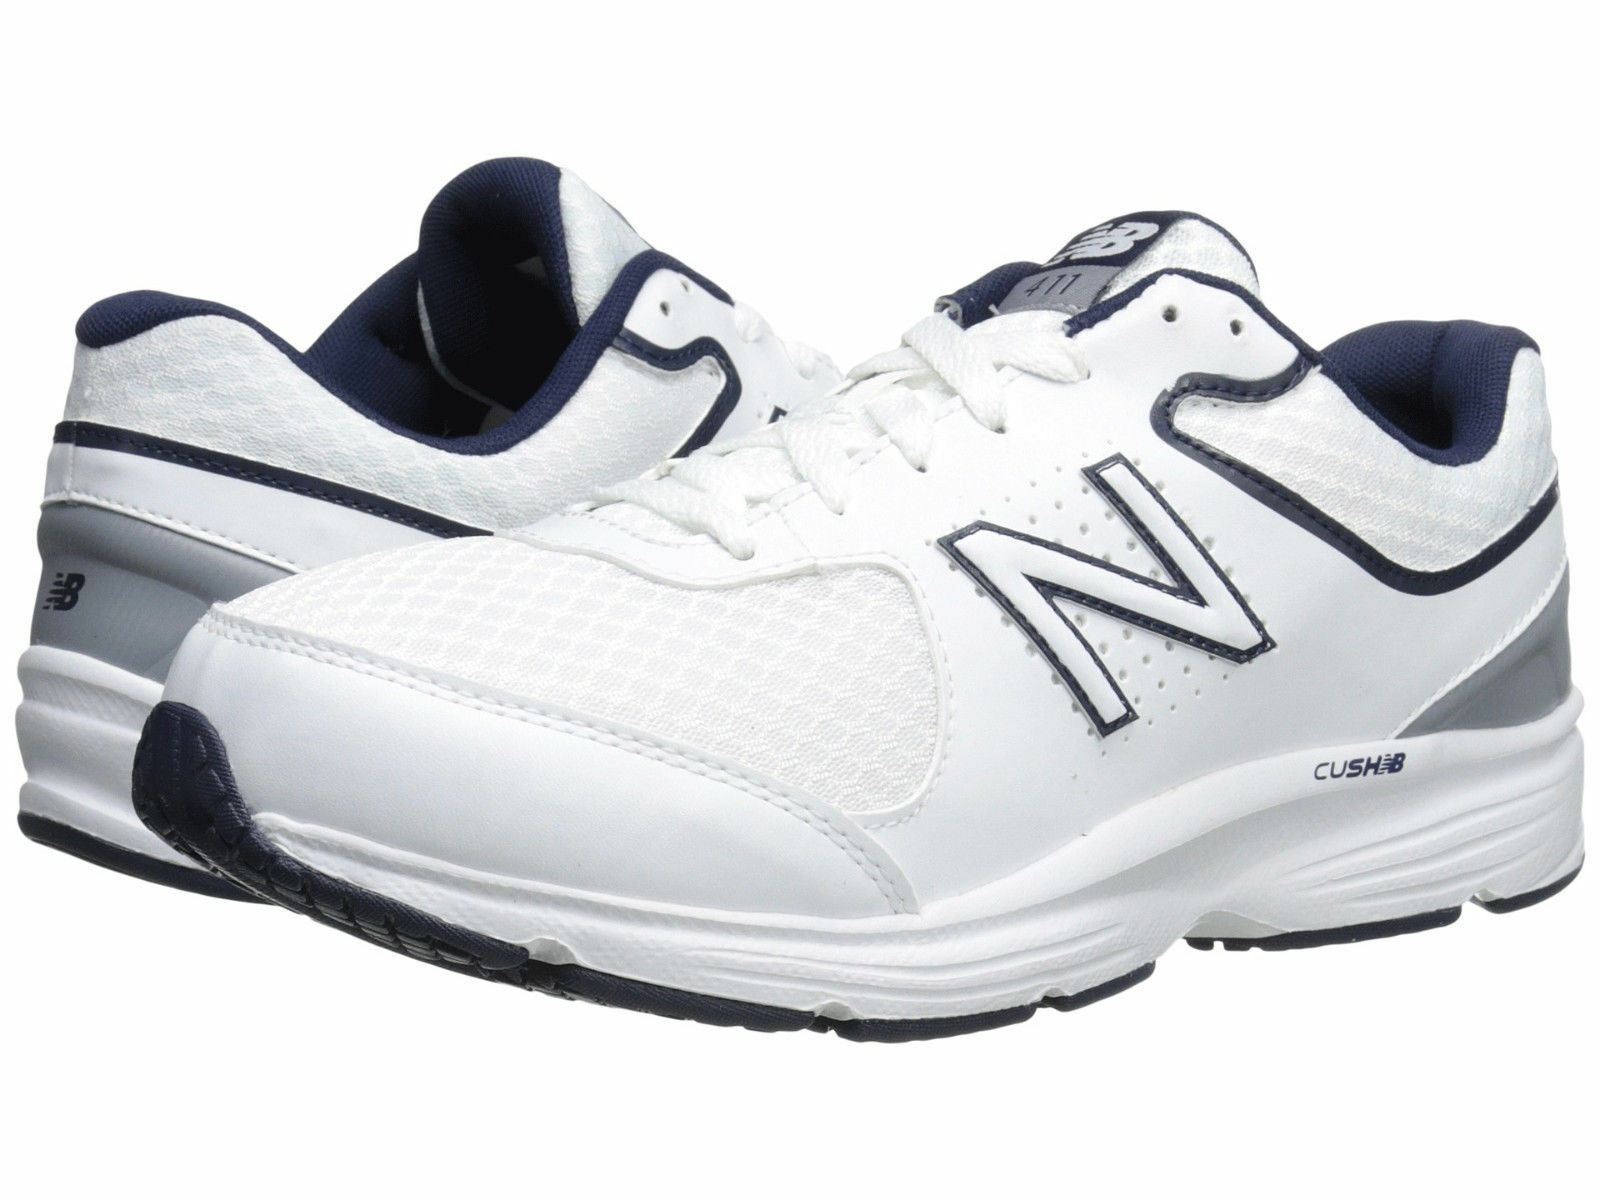 Men New Balance MW411WB2 Walking schuhe Wide (2E) Weiß Weiß Weiß Blau 100% Authentic New c1028d